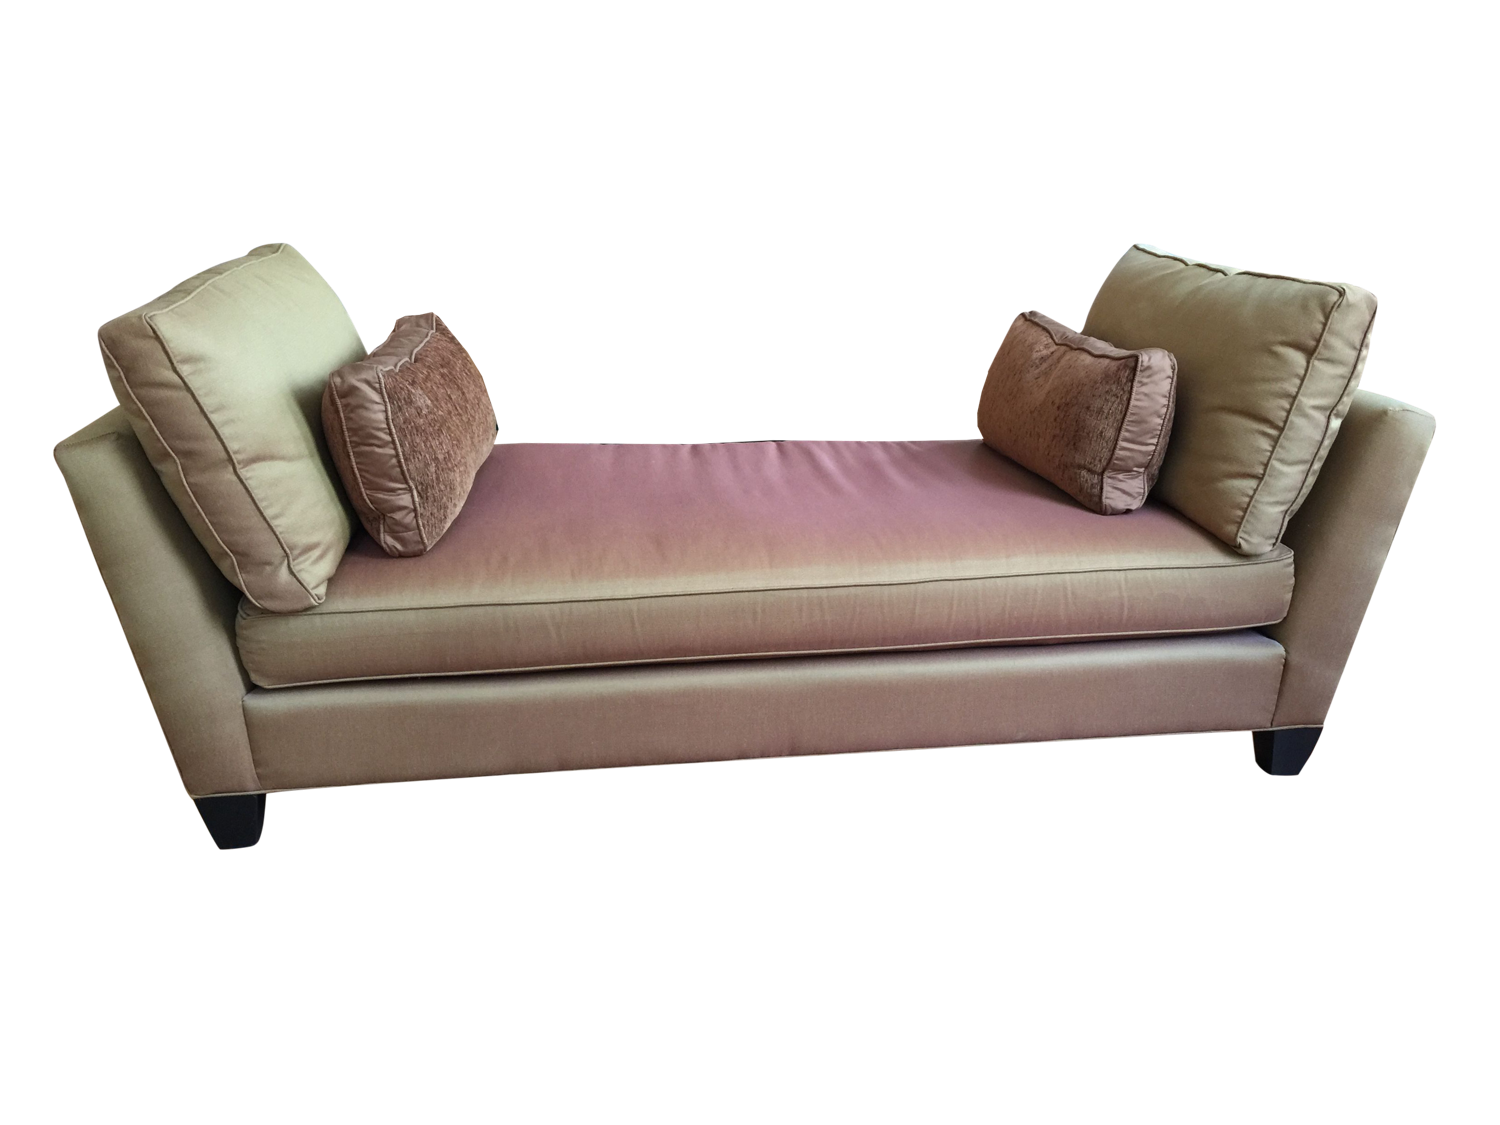 Backless sofa or couch backless sofa couch bench long for Divan crossword